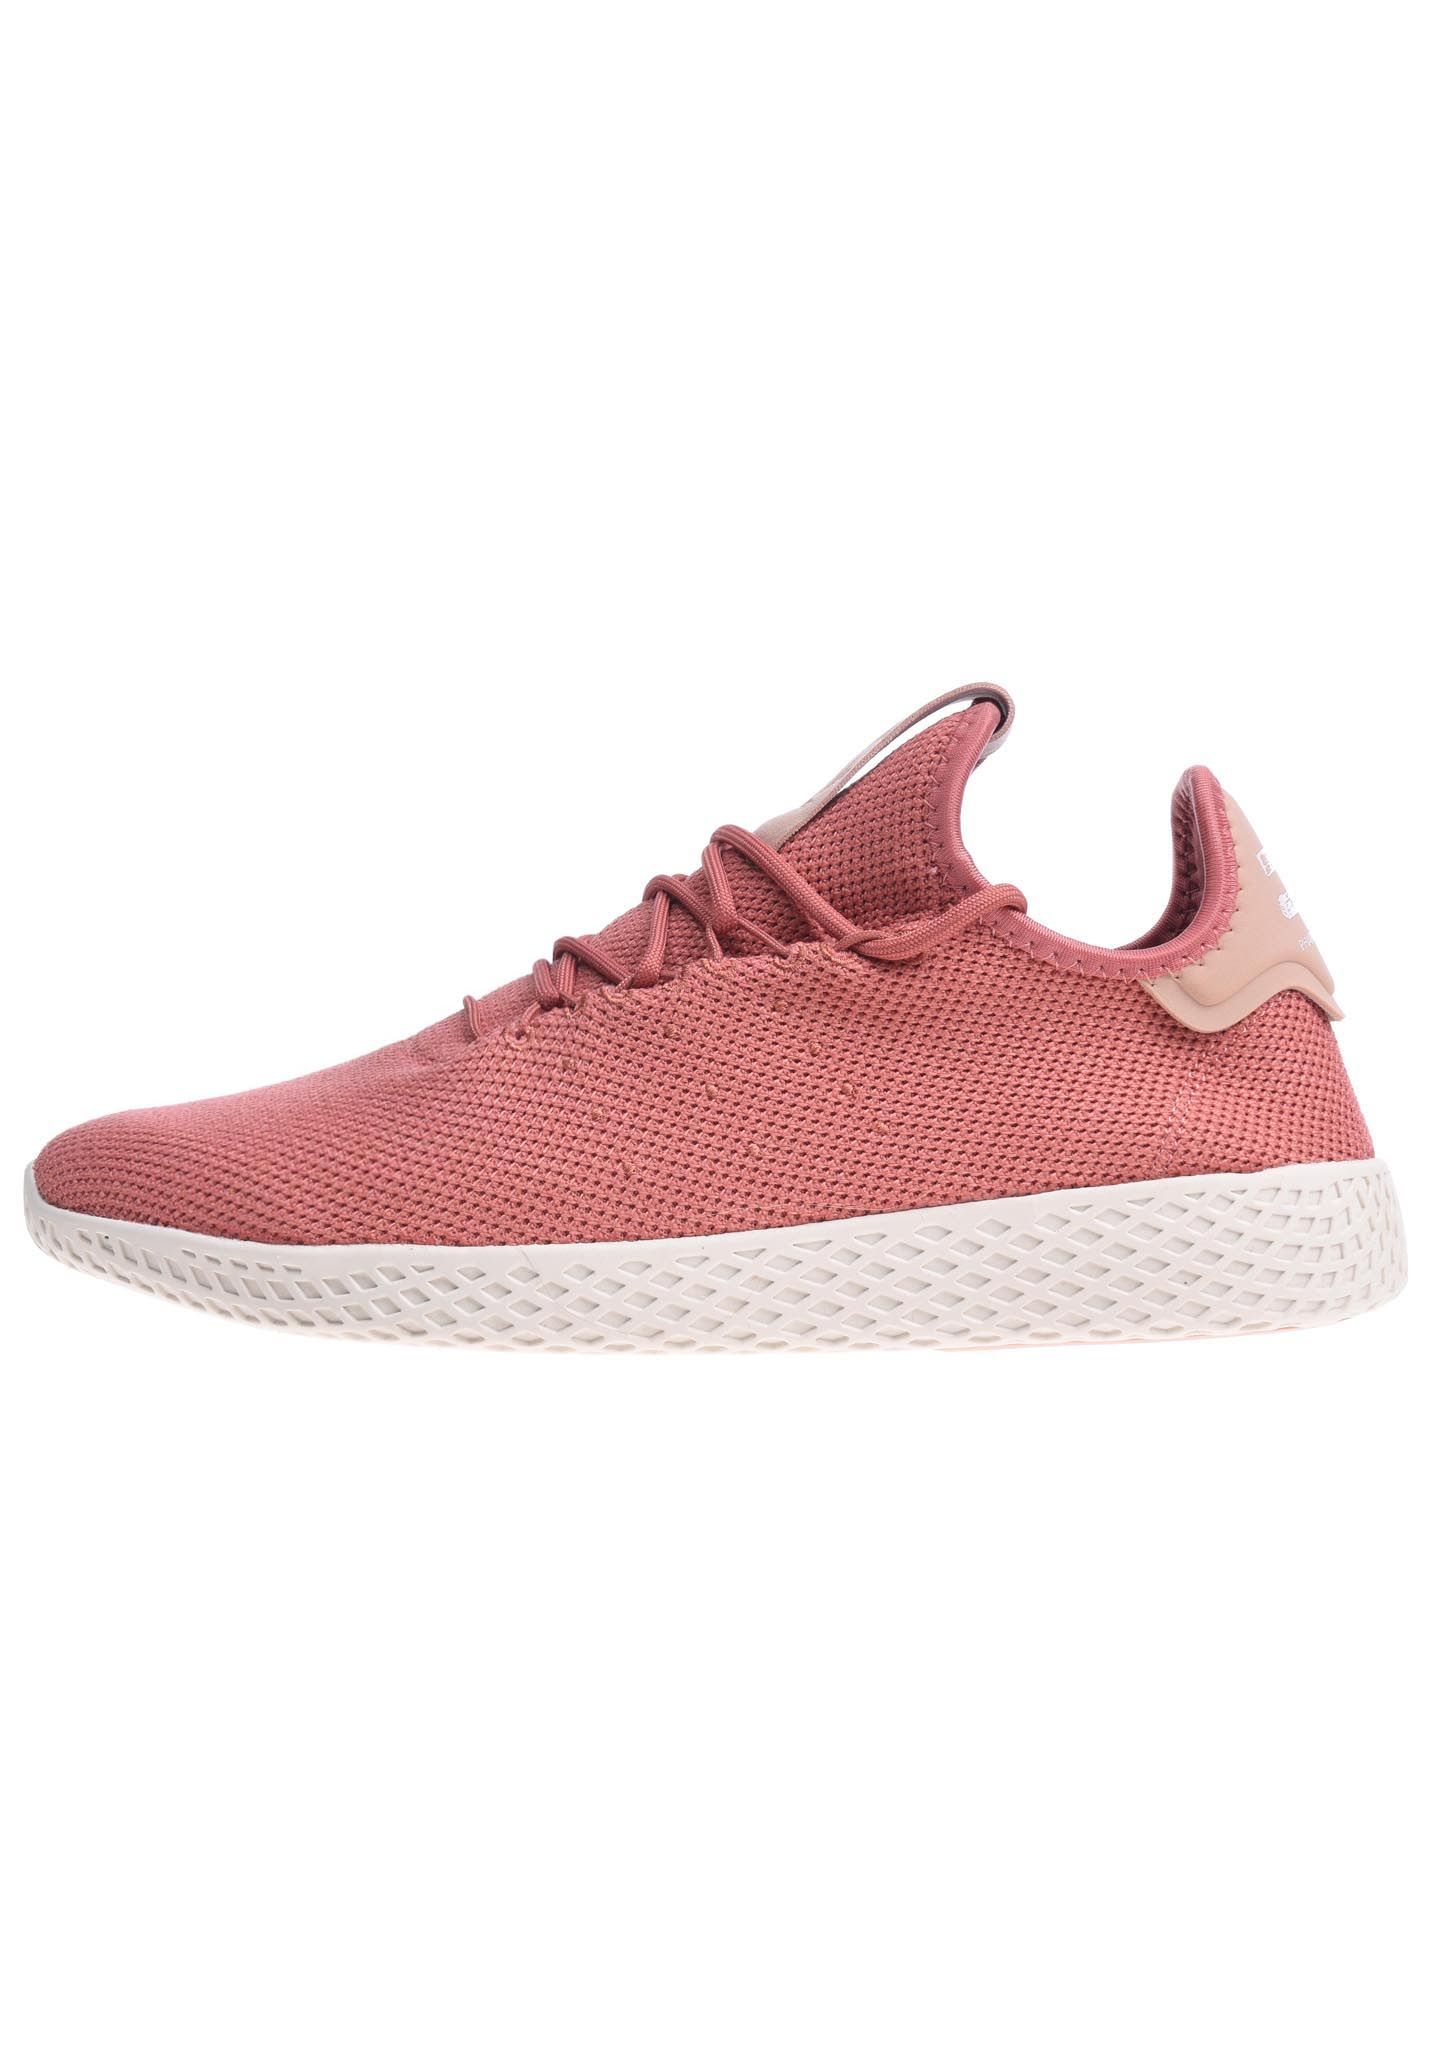 Williams Tennis Originals Pink Sneakers Hu Pharrell Sports Women Adidas For Planet OqPxnEd